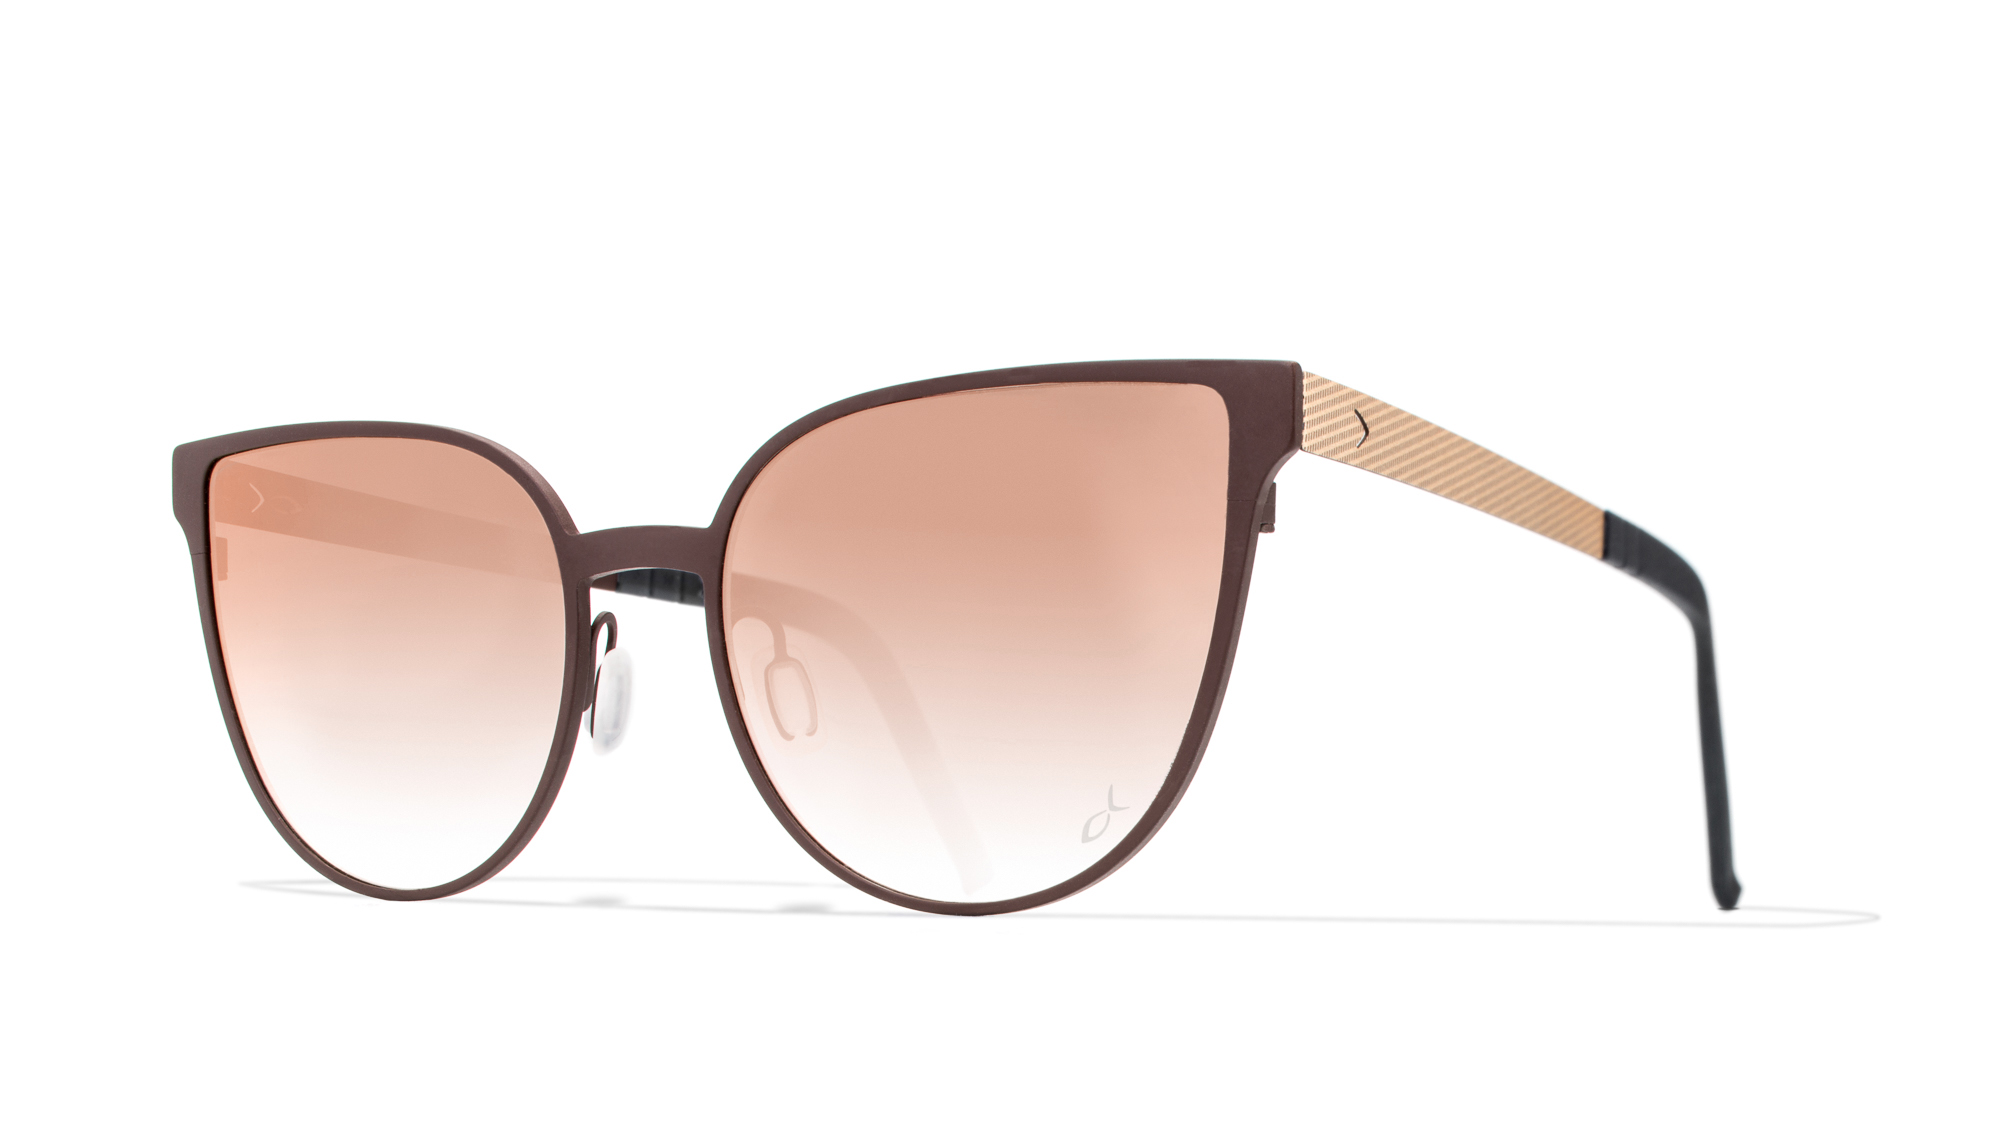 Blackfin | frame: Gold Beach BF784 Col.687